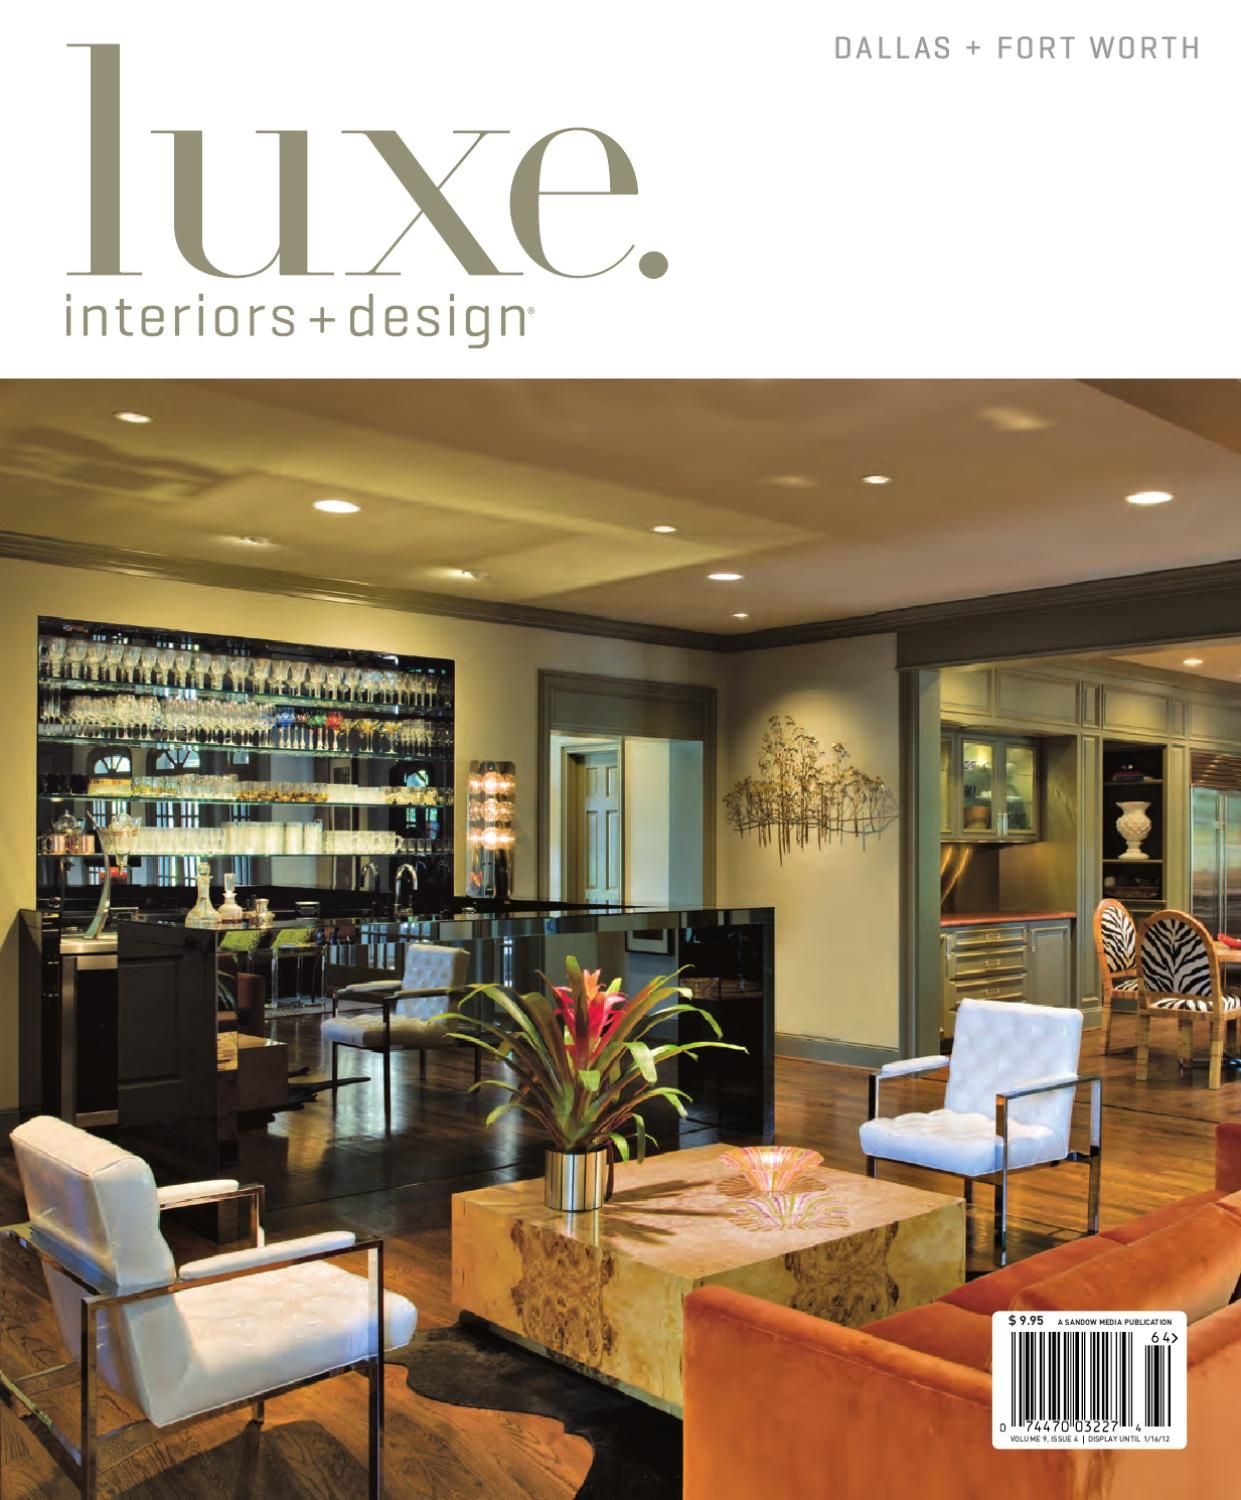 LUXE Interiors + Design Dallas 20 LUXE Interiors + Design Magazine Is A  Quarterly Journal That